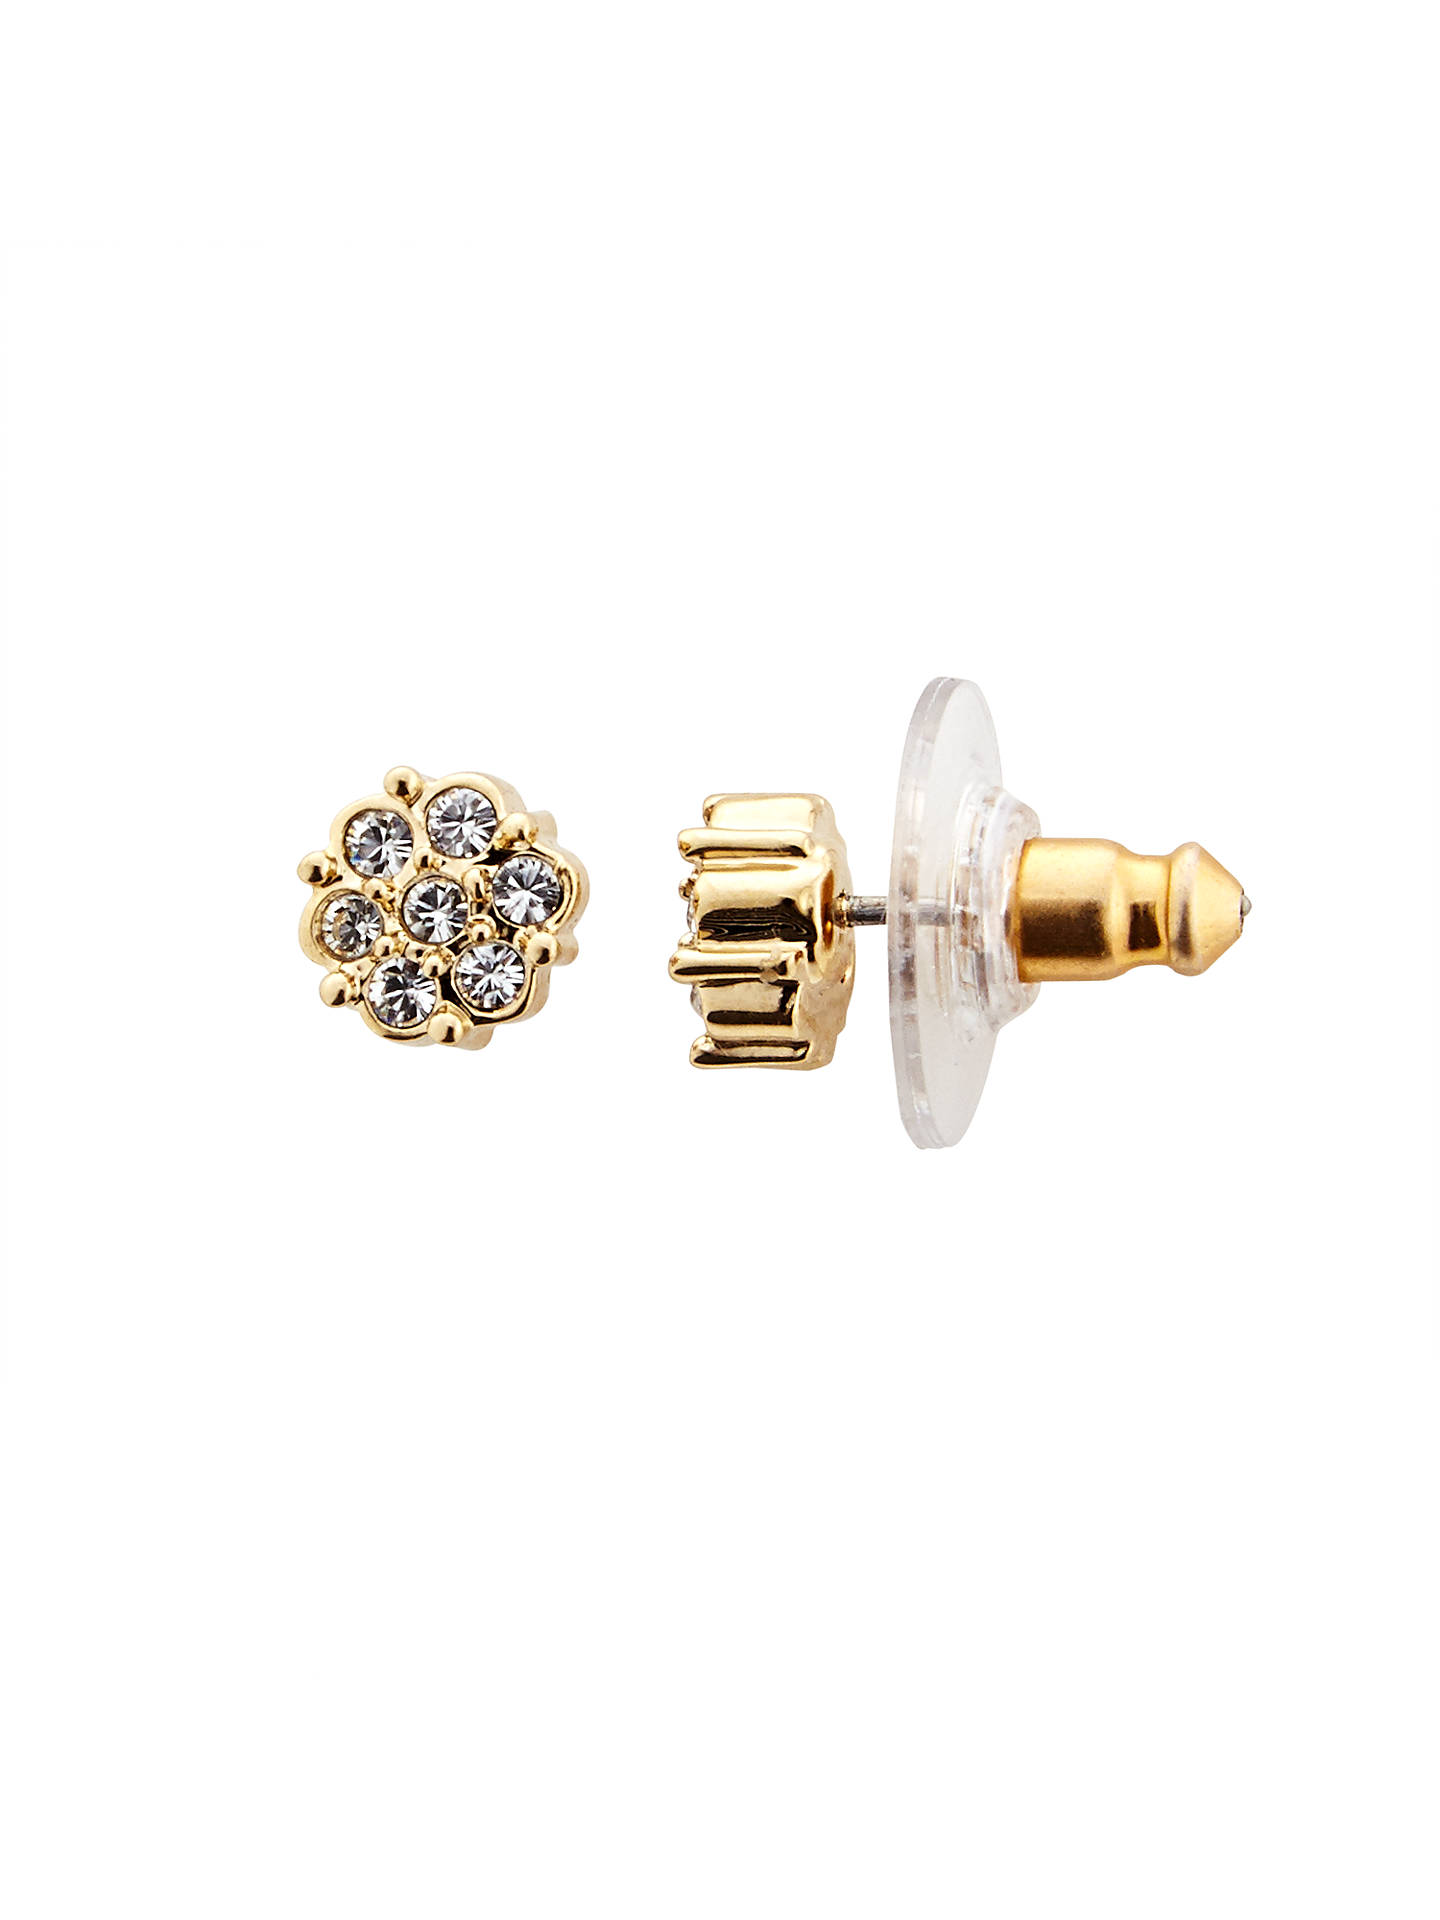 cfcff3186e2e8 Cachet Gold Plated Swarovski Crystal Stud Earrings, Gold